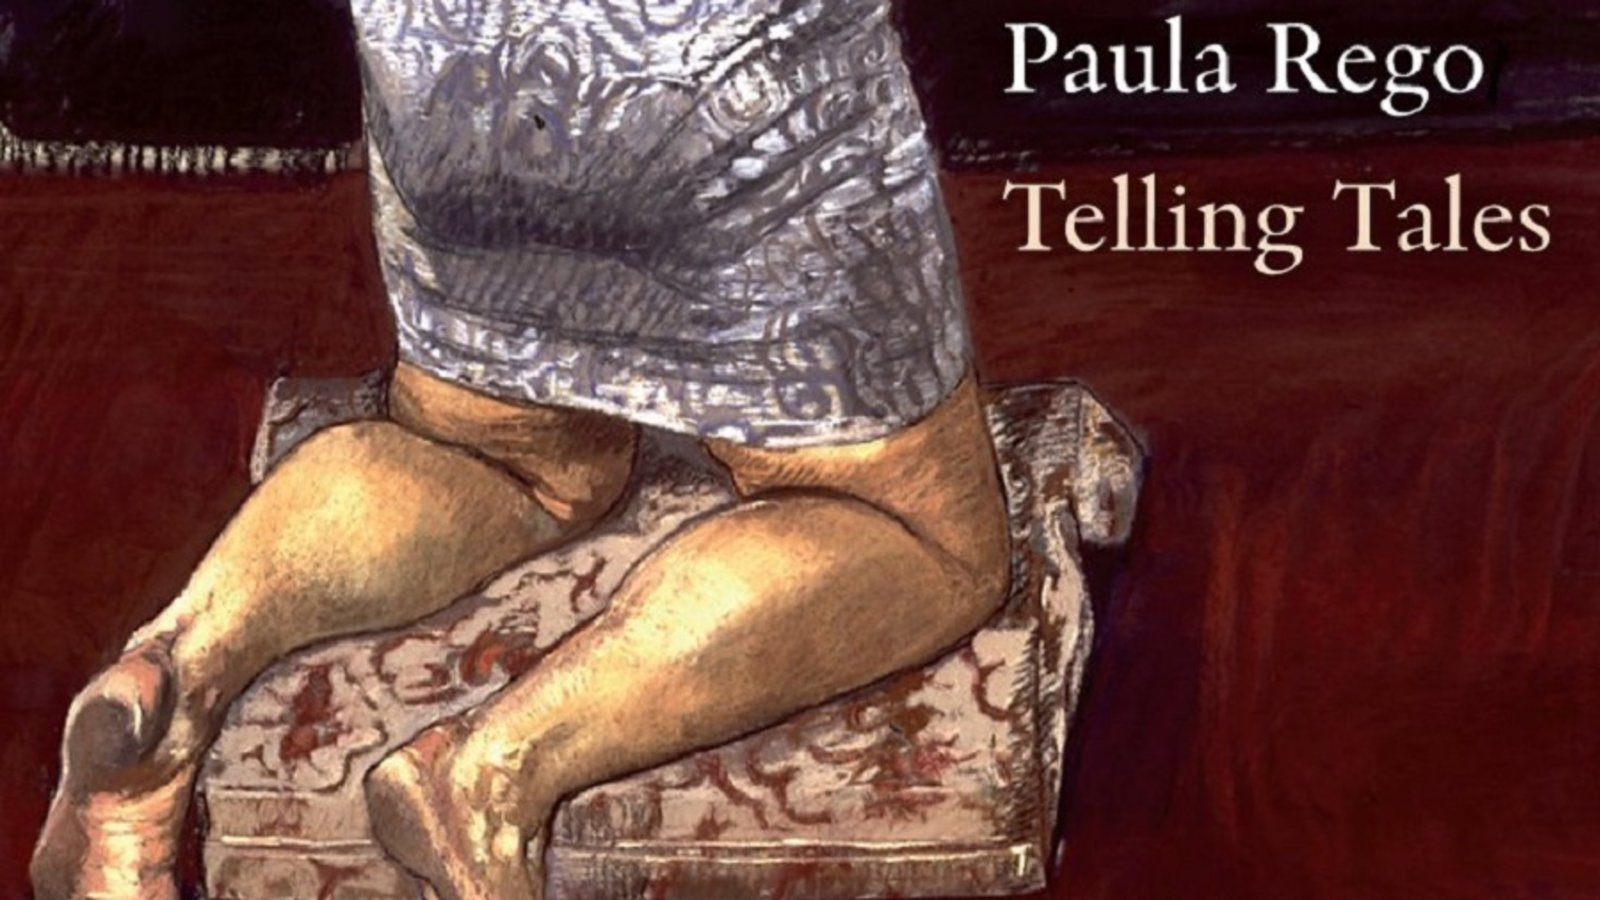 Paula Rego: Telling Tales - Painting the Female Experience